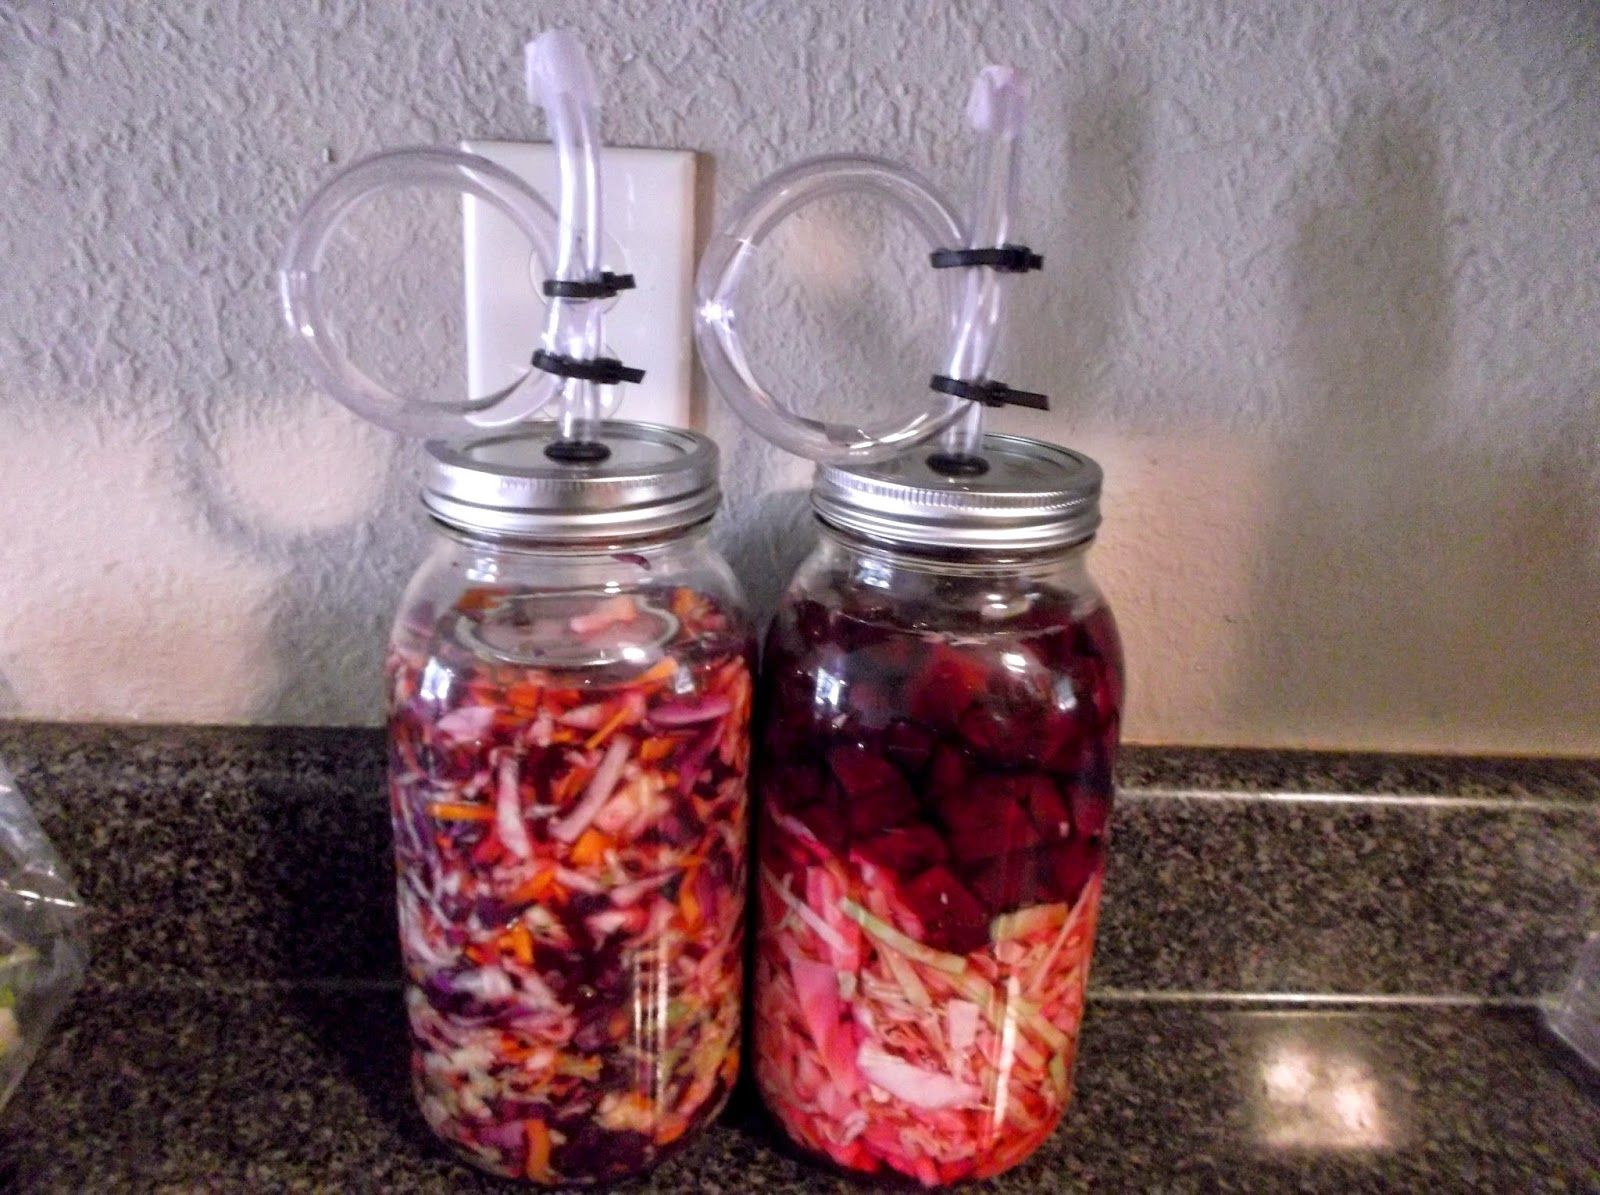 Noelle Likes Good Food Diy Airlock For Lacto Fermentation Food Fermentation Good Food